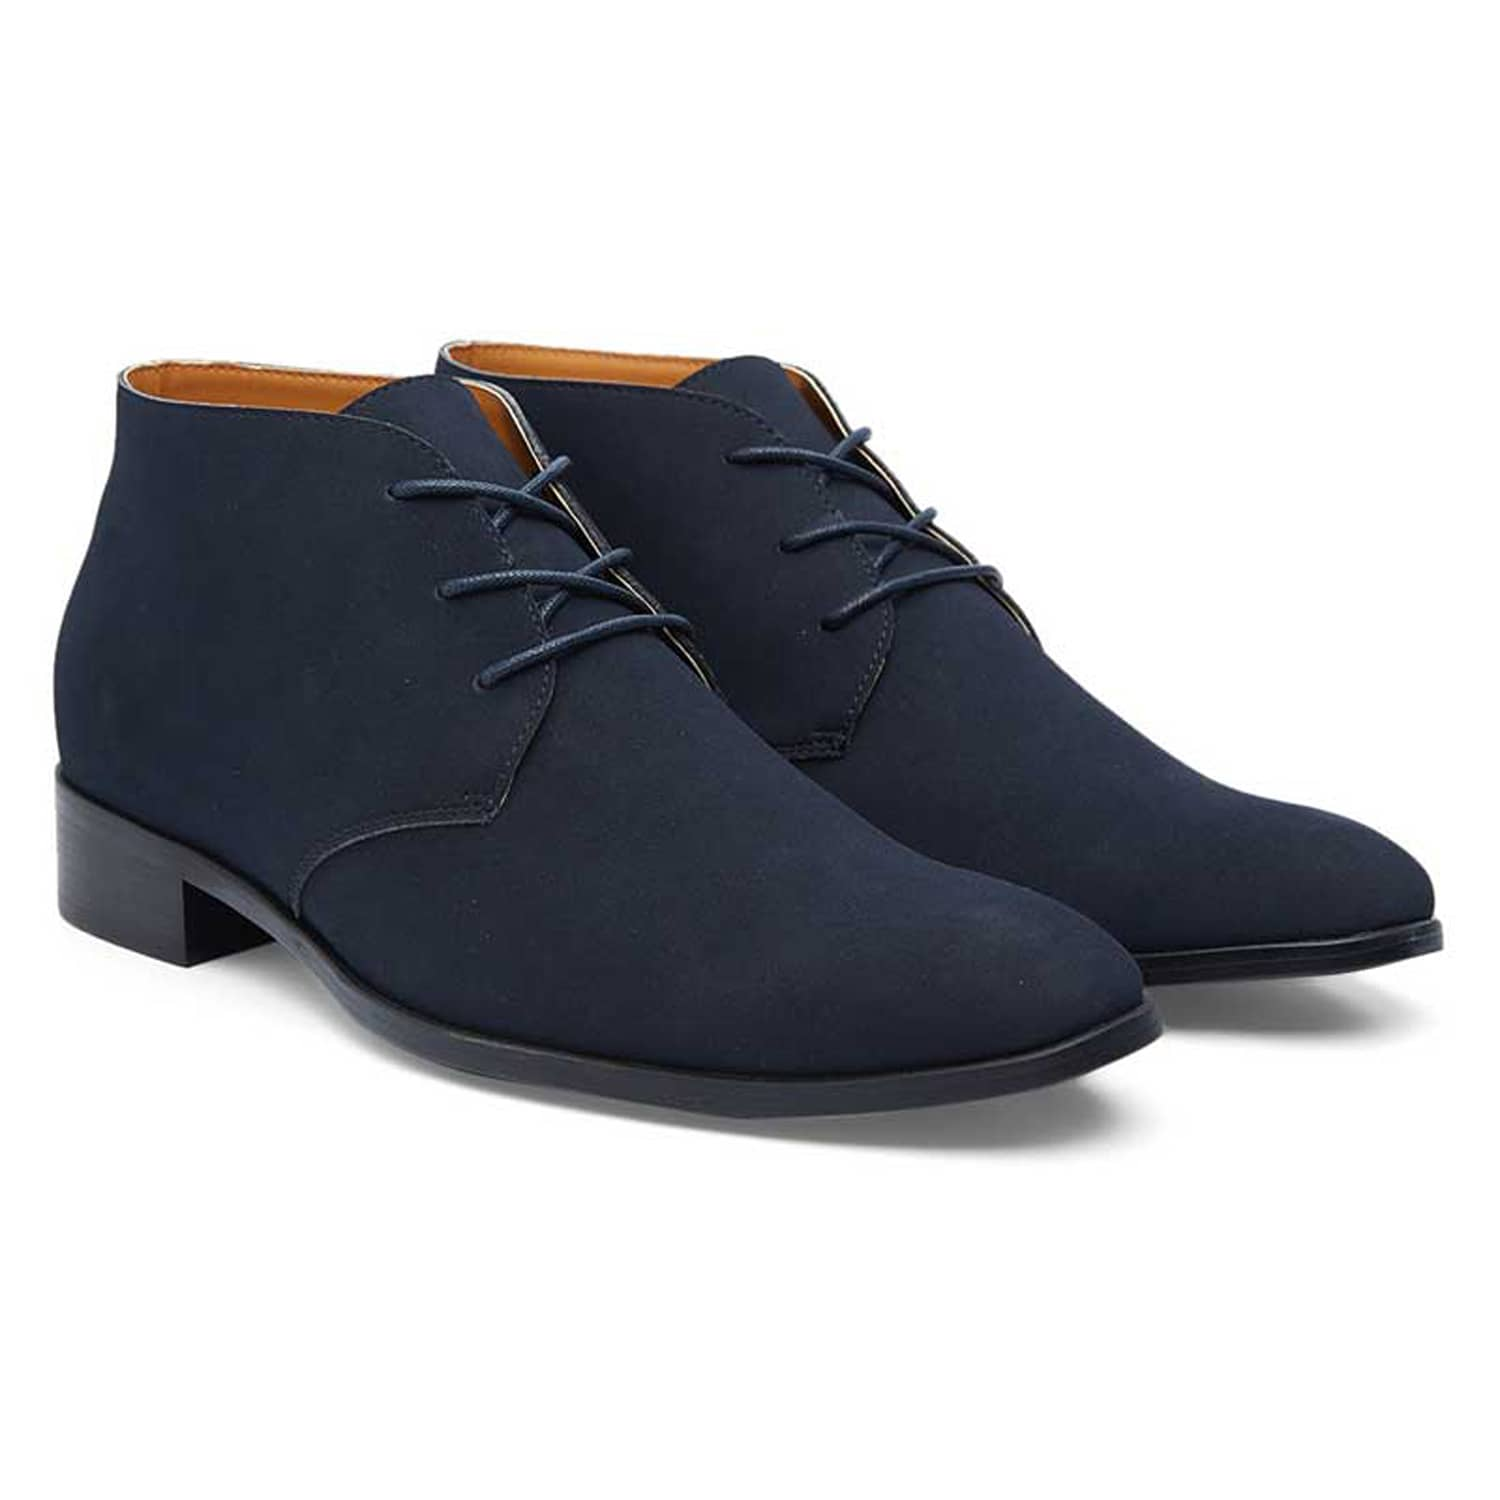 Elevato Height increasing Men's Ankle Shoes